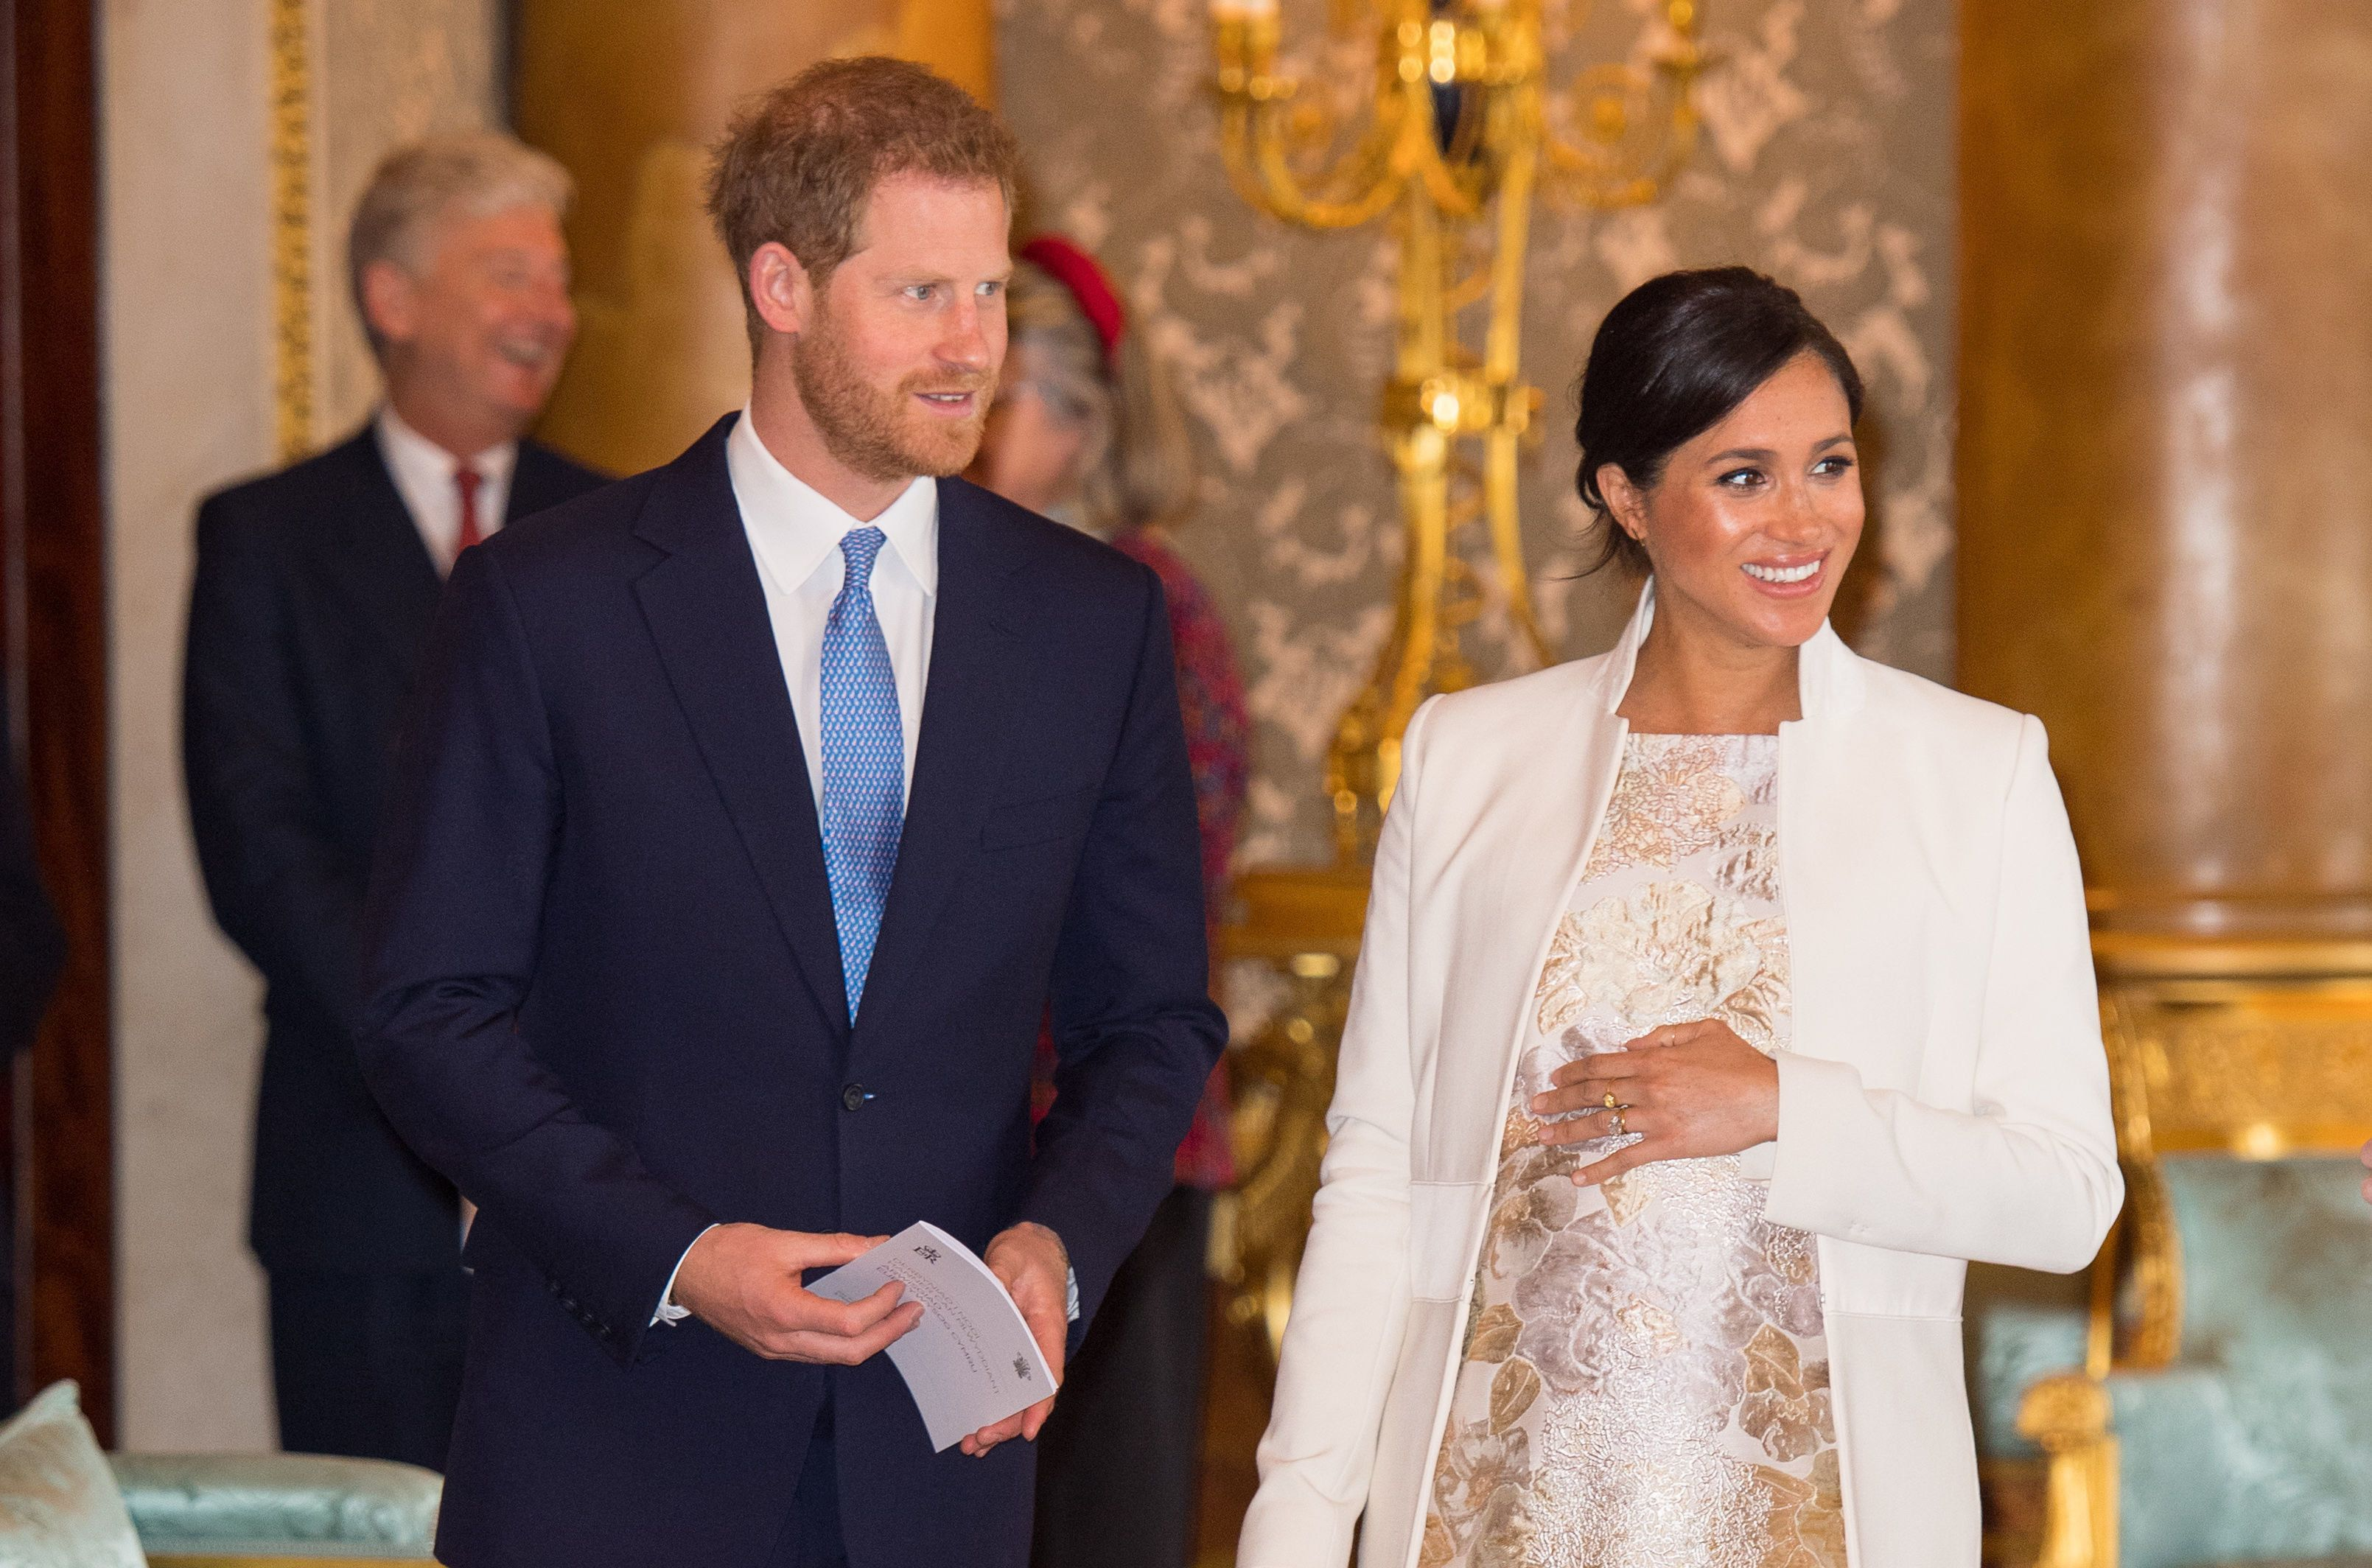 Royal Baby Name Predictions: What Will Meghan Markle And Prince Harry